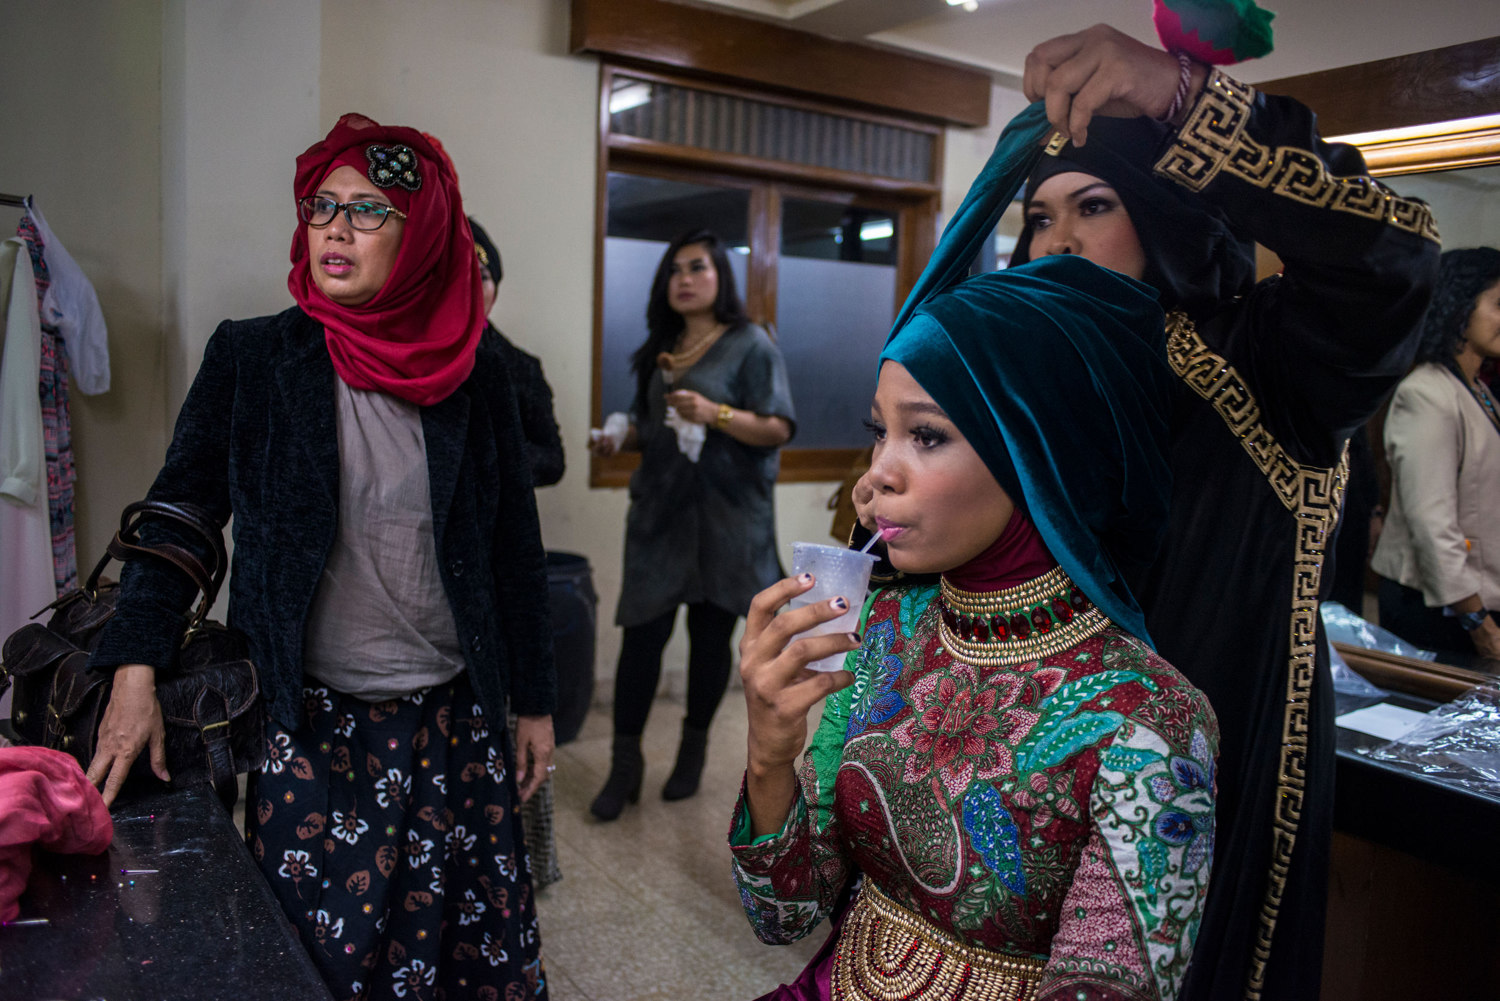 After advancing to the second round, Miss Nigeria, Bilqis Adebayo drinks water while stylists work on her hijab. The Grand Finale of the Miss Muslimah World Competition on November 21st, 2014 in Yogakarta, Indonesia.